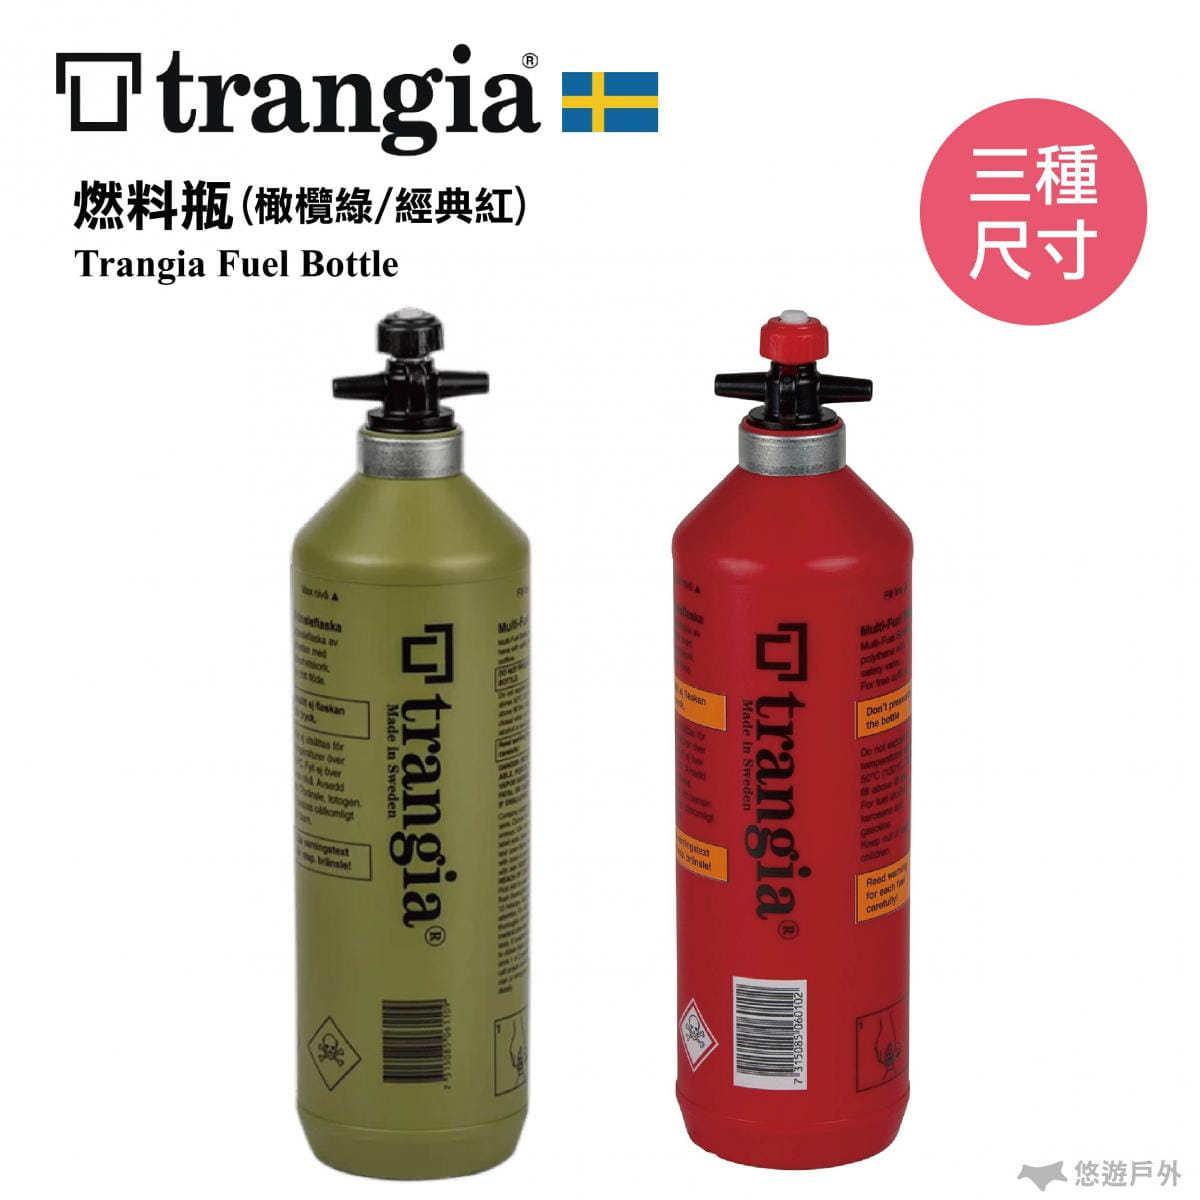 【總代理公司貨】Trangia Fuel Bottle 燃料瓶 (0.3/0.5/1.0L)